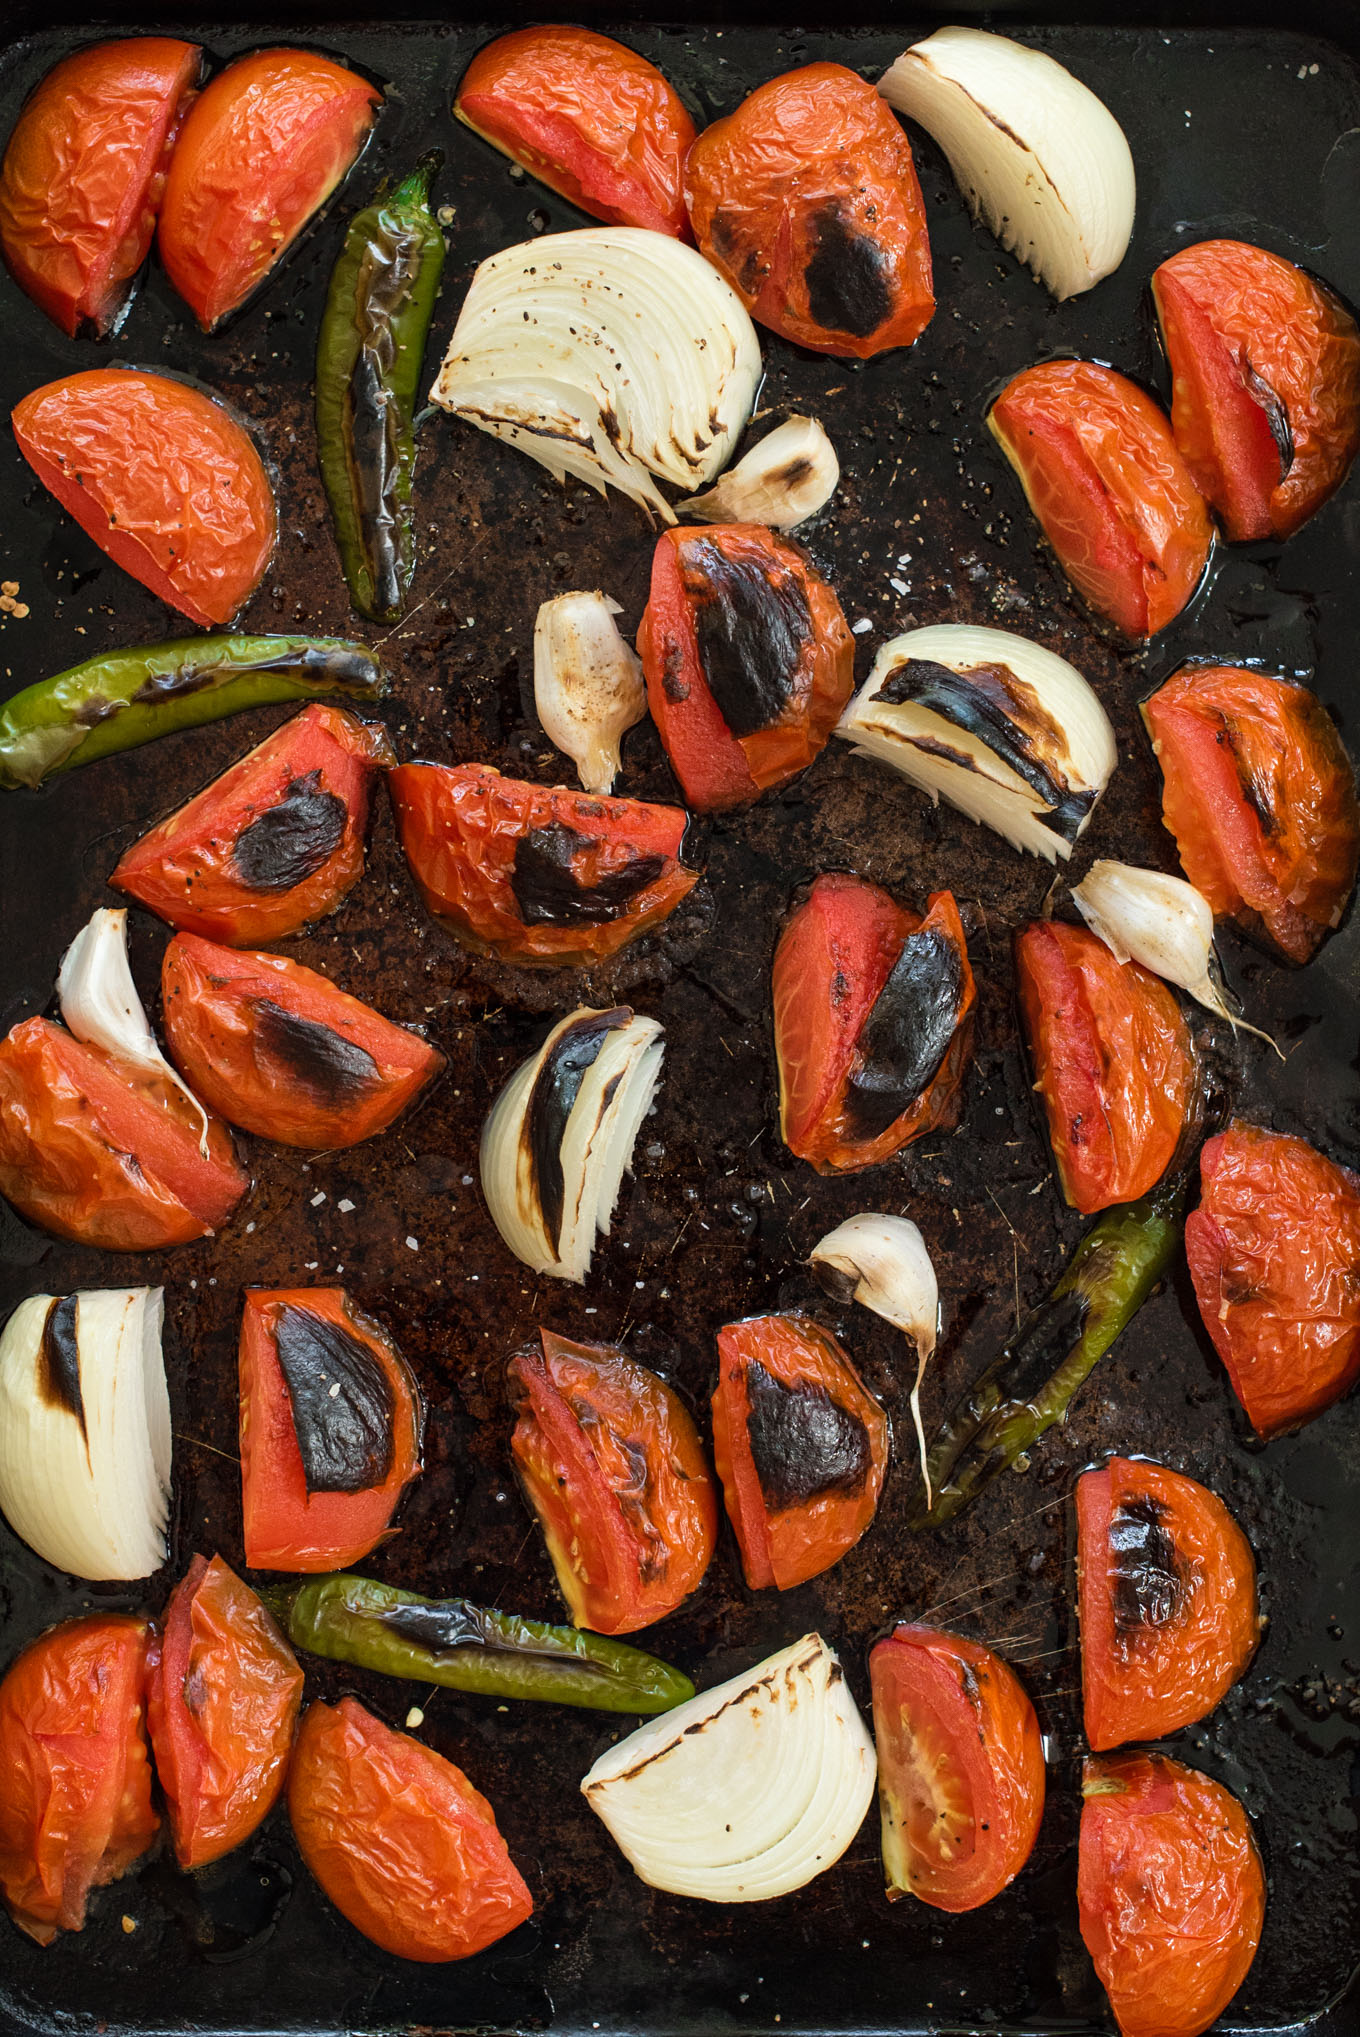 Sheet pan with roasted tomatoes, onions, peppers